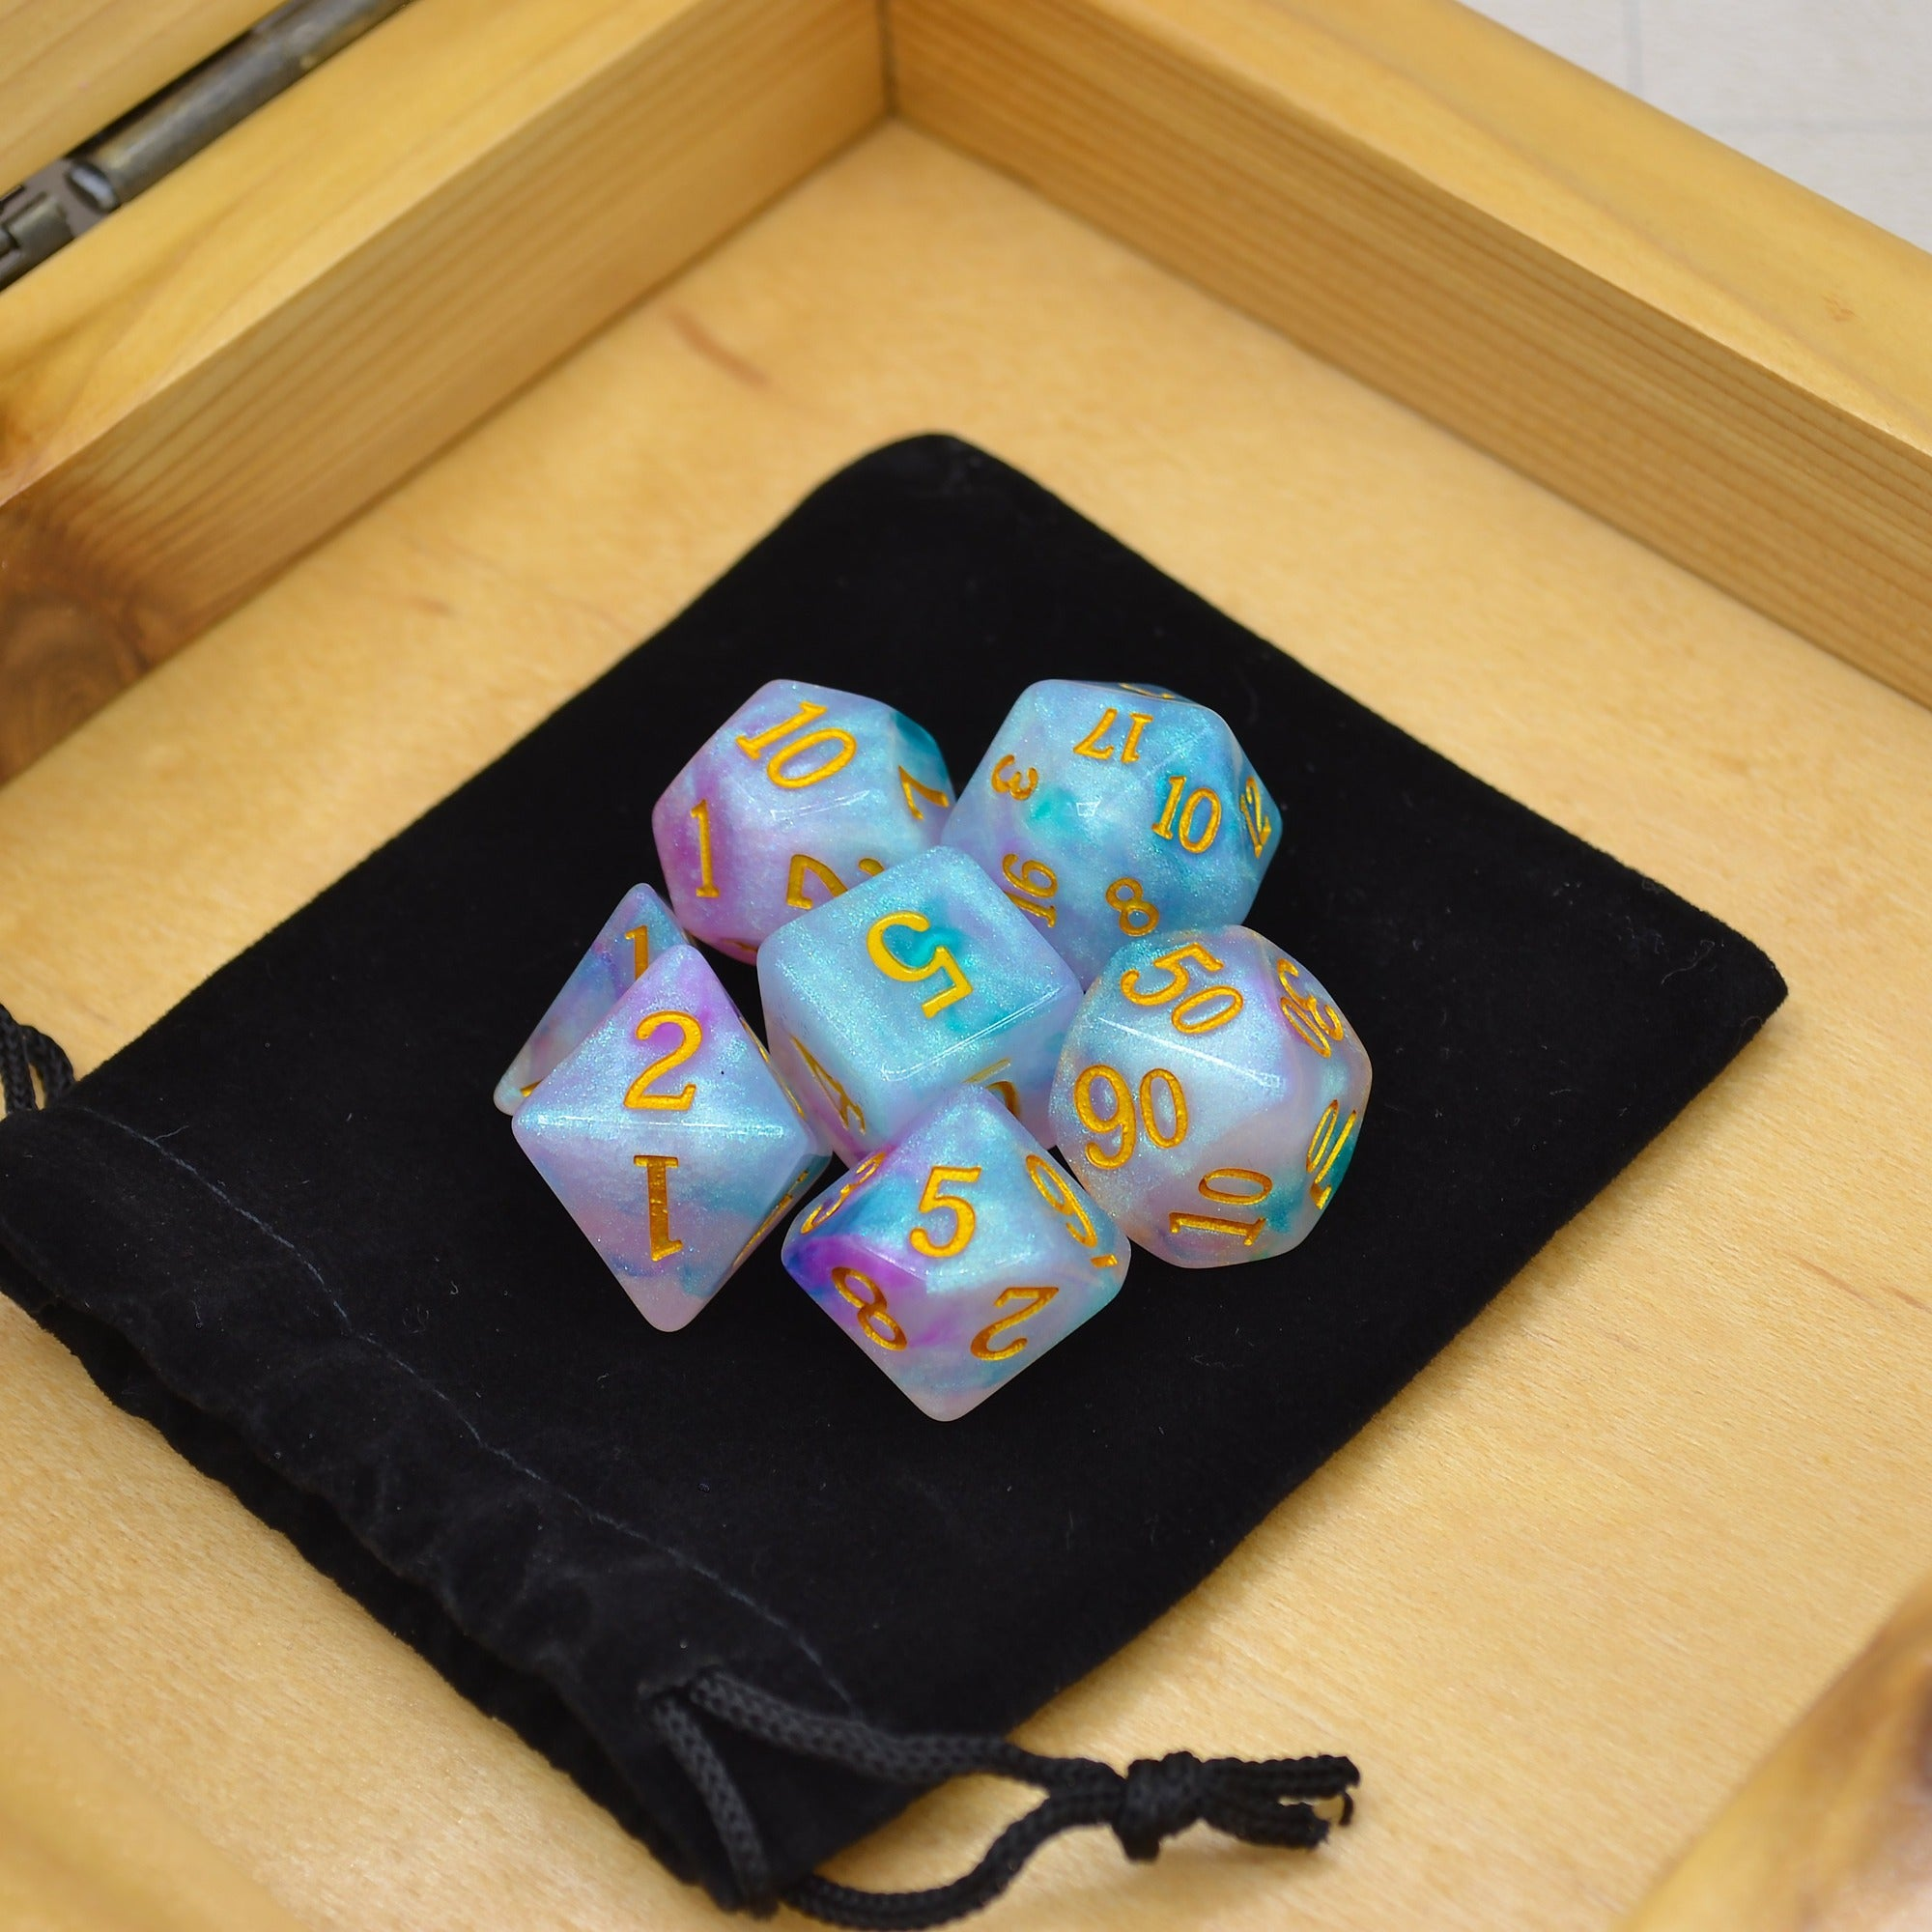 Oberon's Focus Polyhedral Dice Set - 7 Dice Total - Wildbot3d